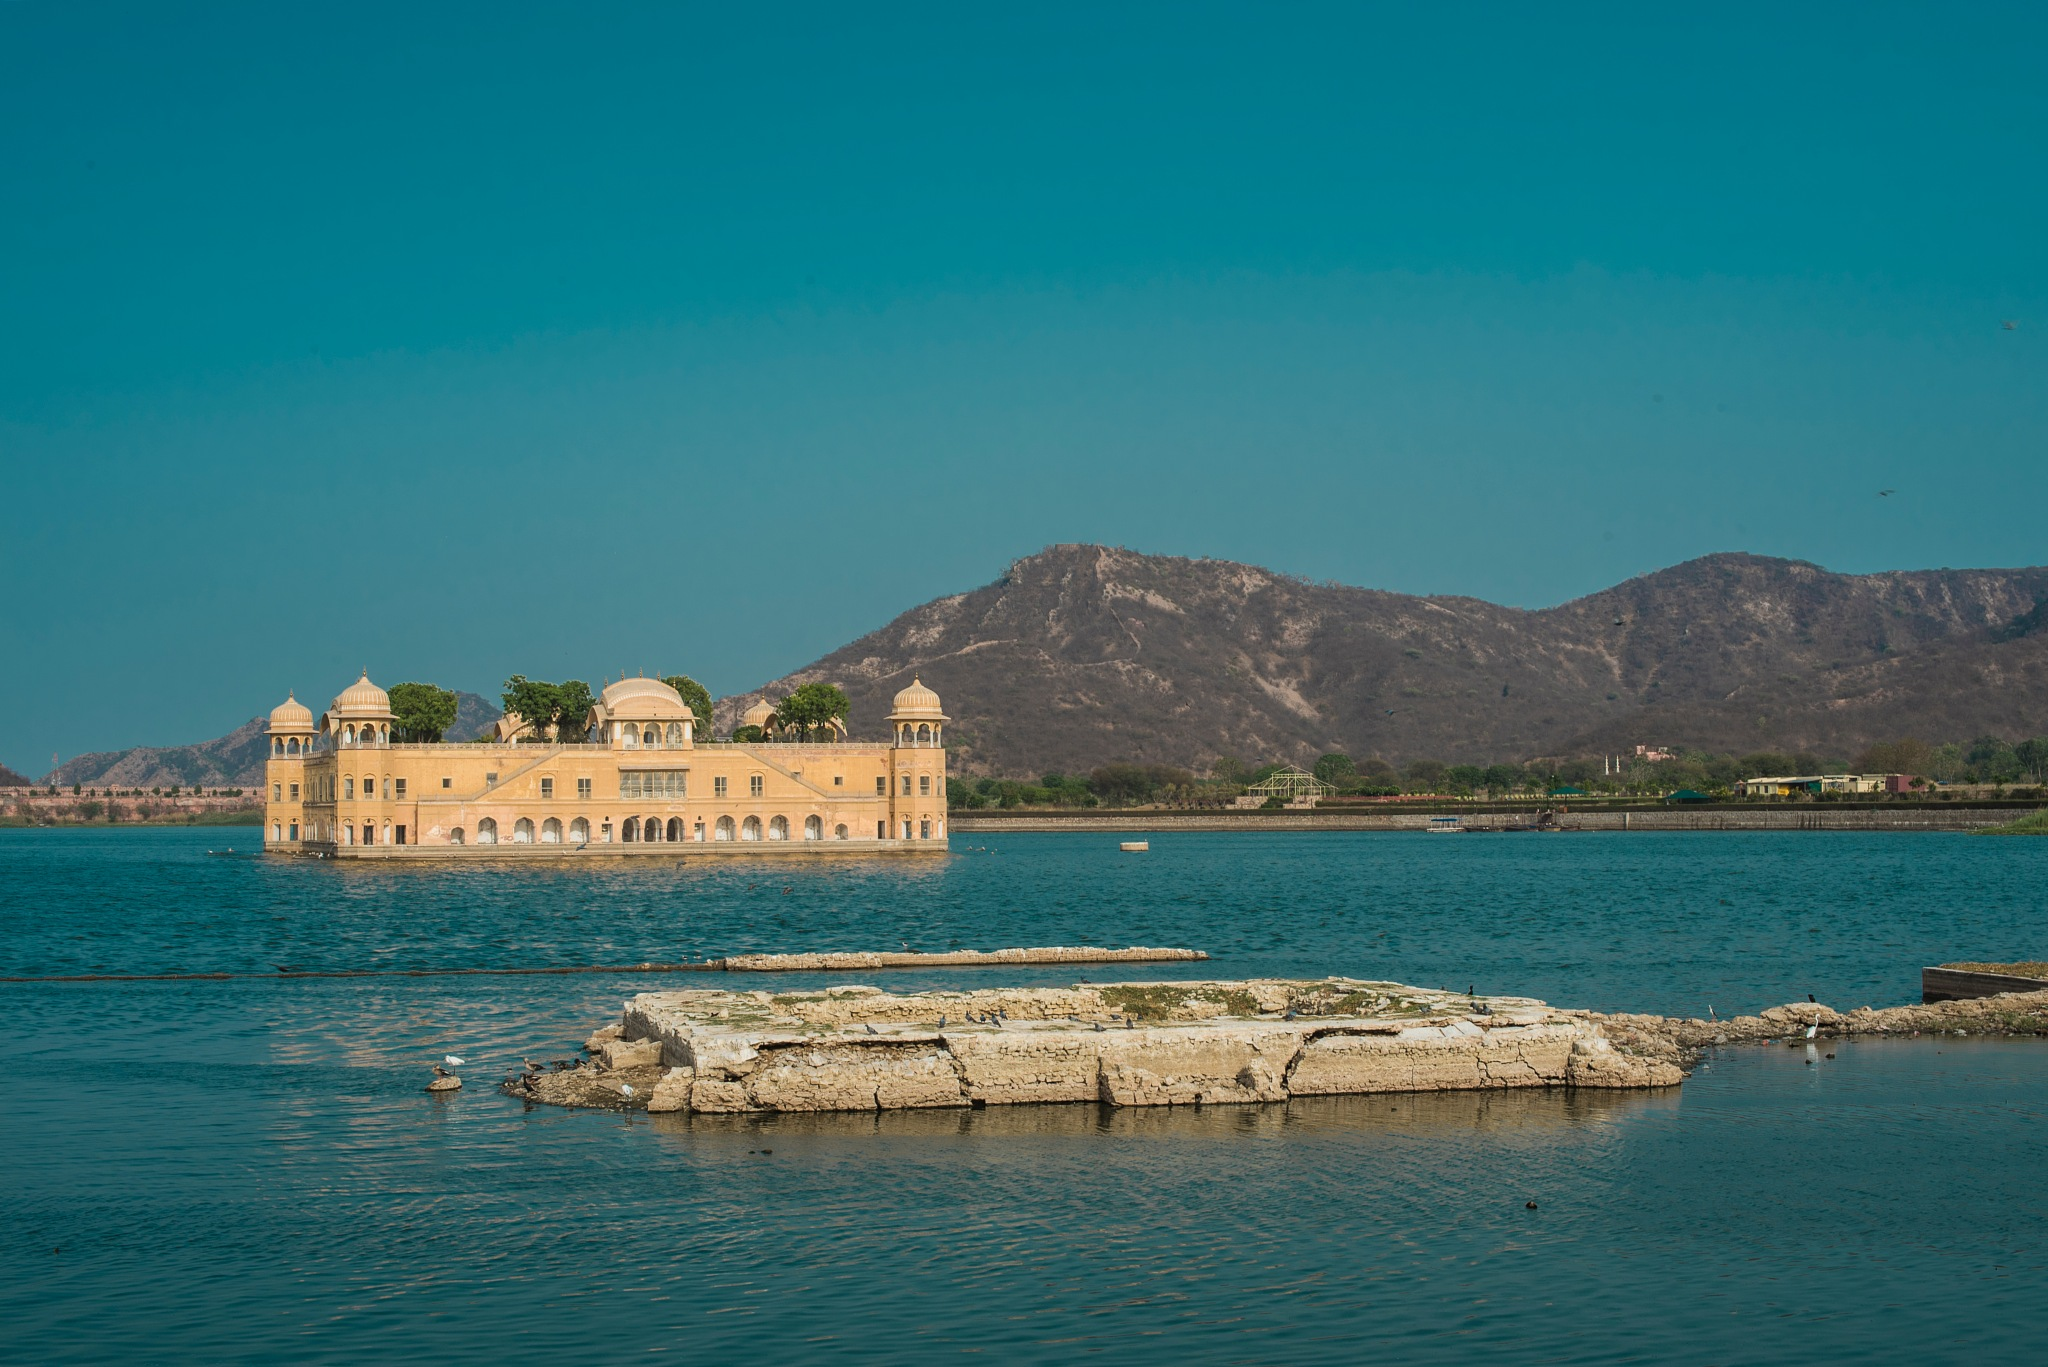 Jal Mahal- A Palace between water by Chandramoulieswar